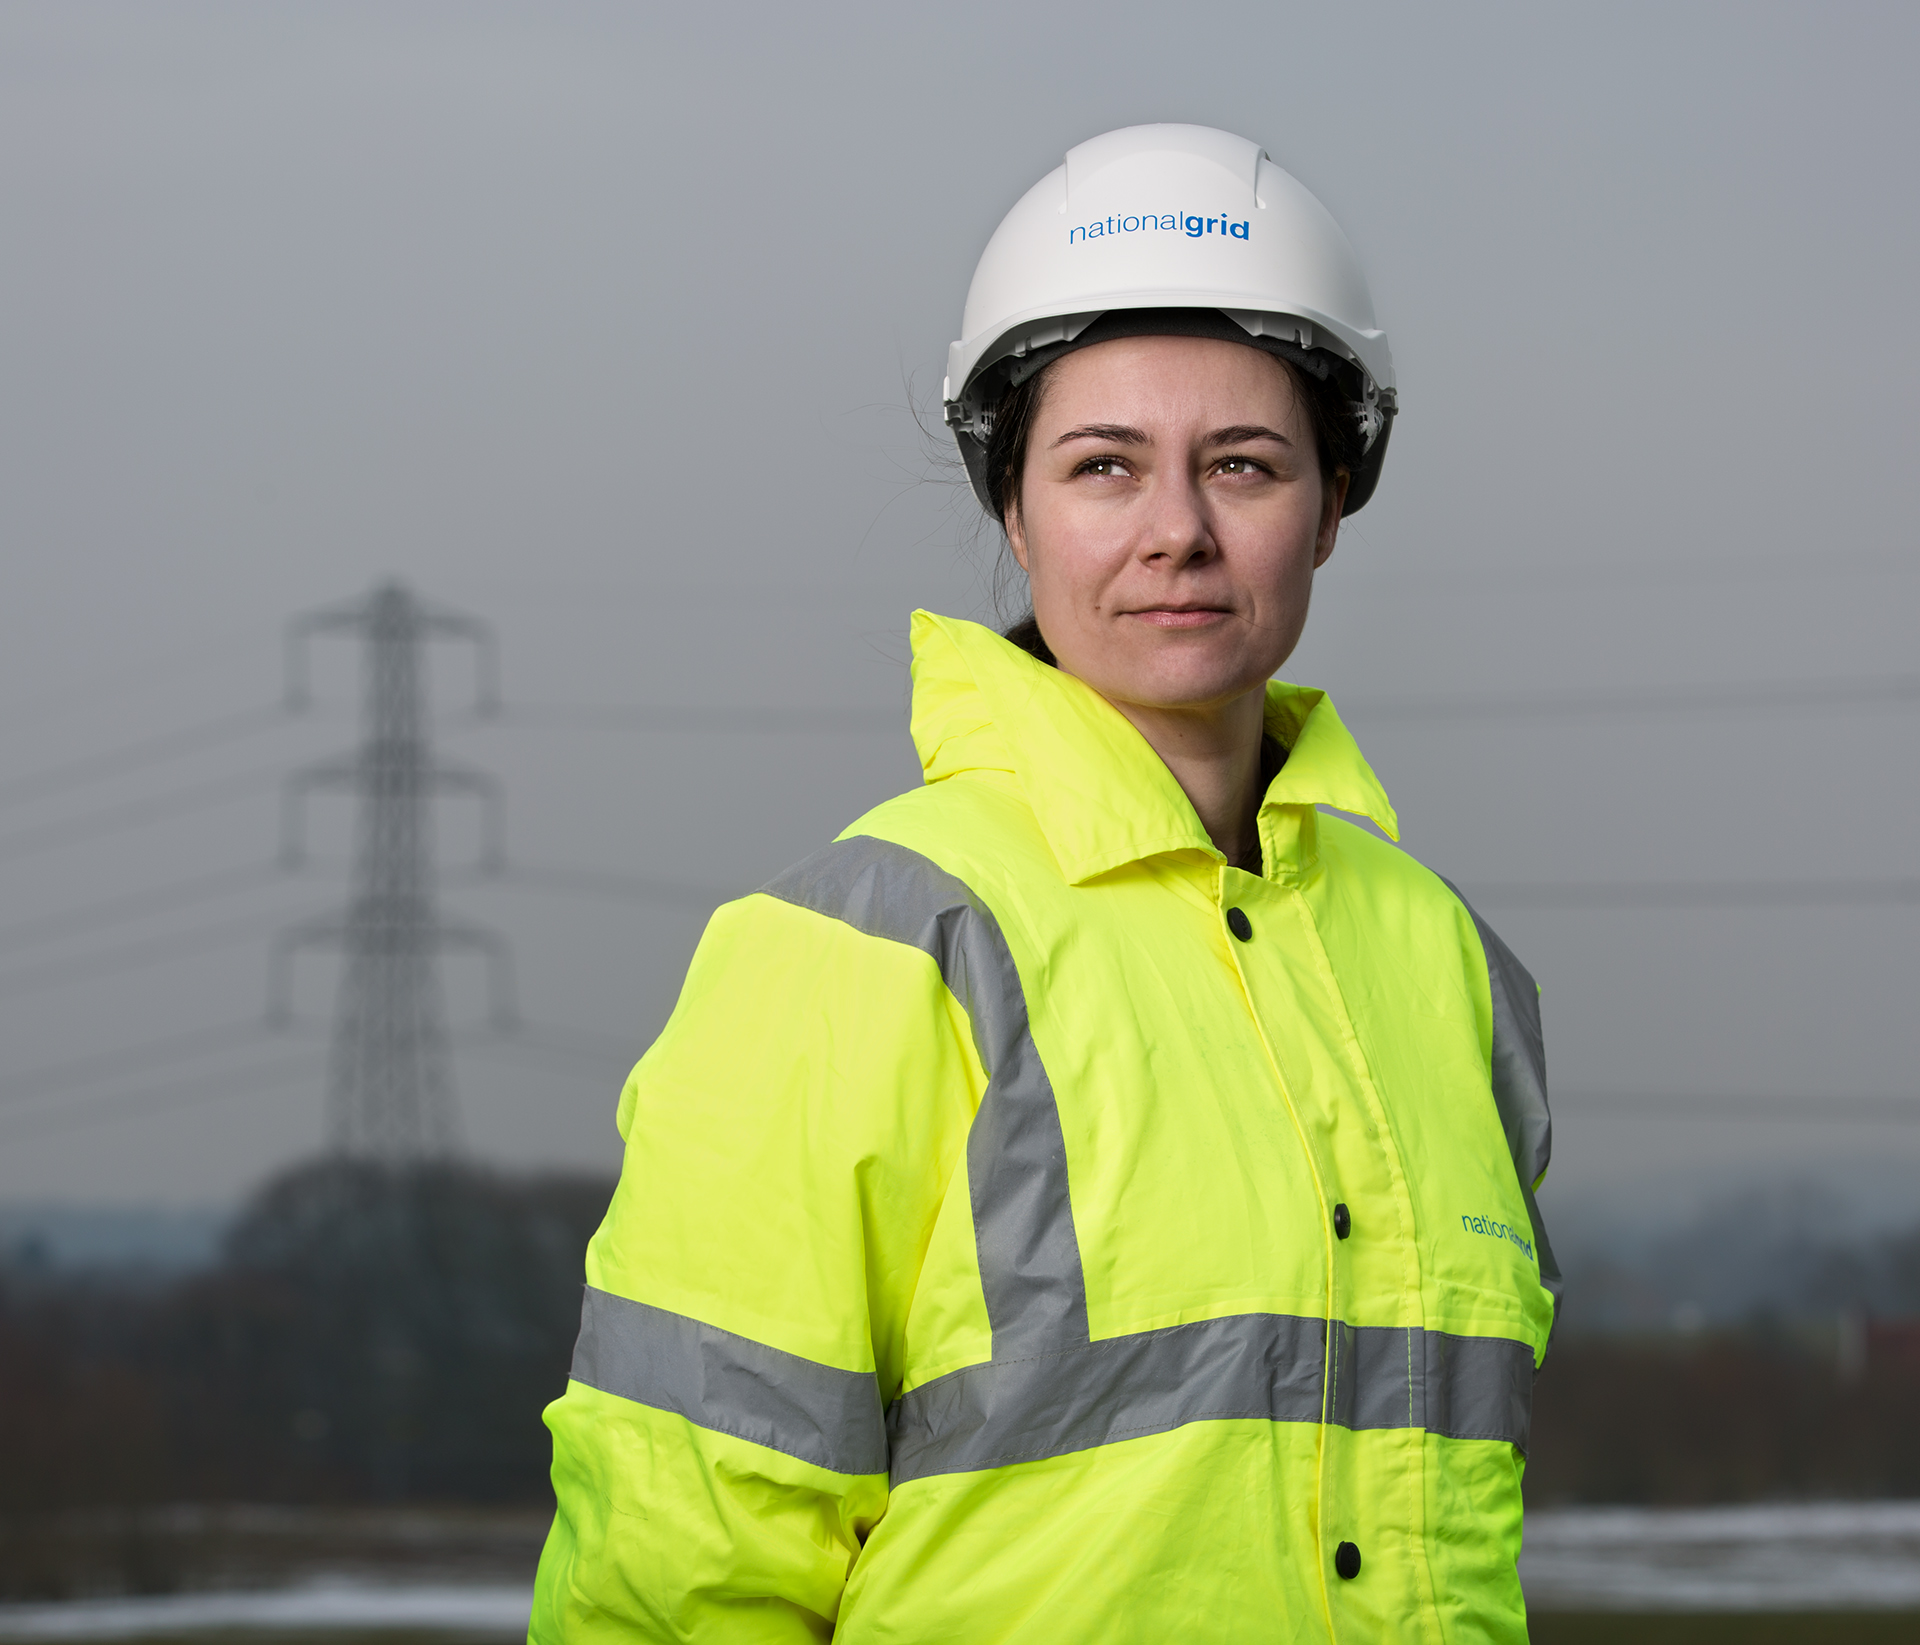 Oliwia Miłek-Richards / Electricity demand forecaster at National Grid.